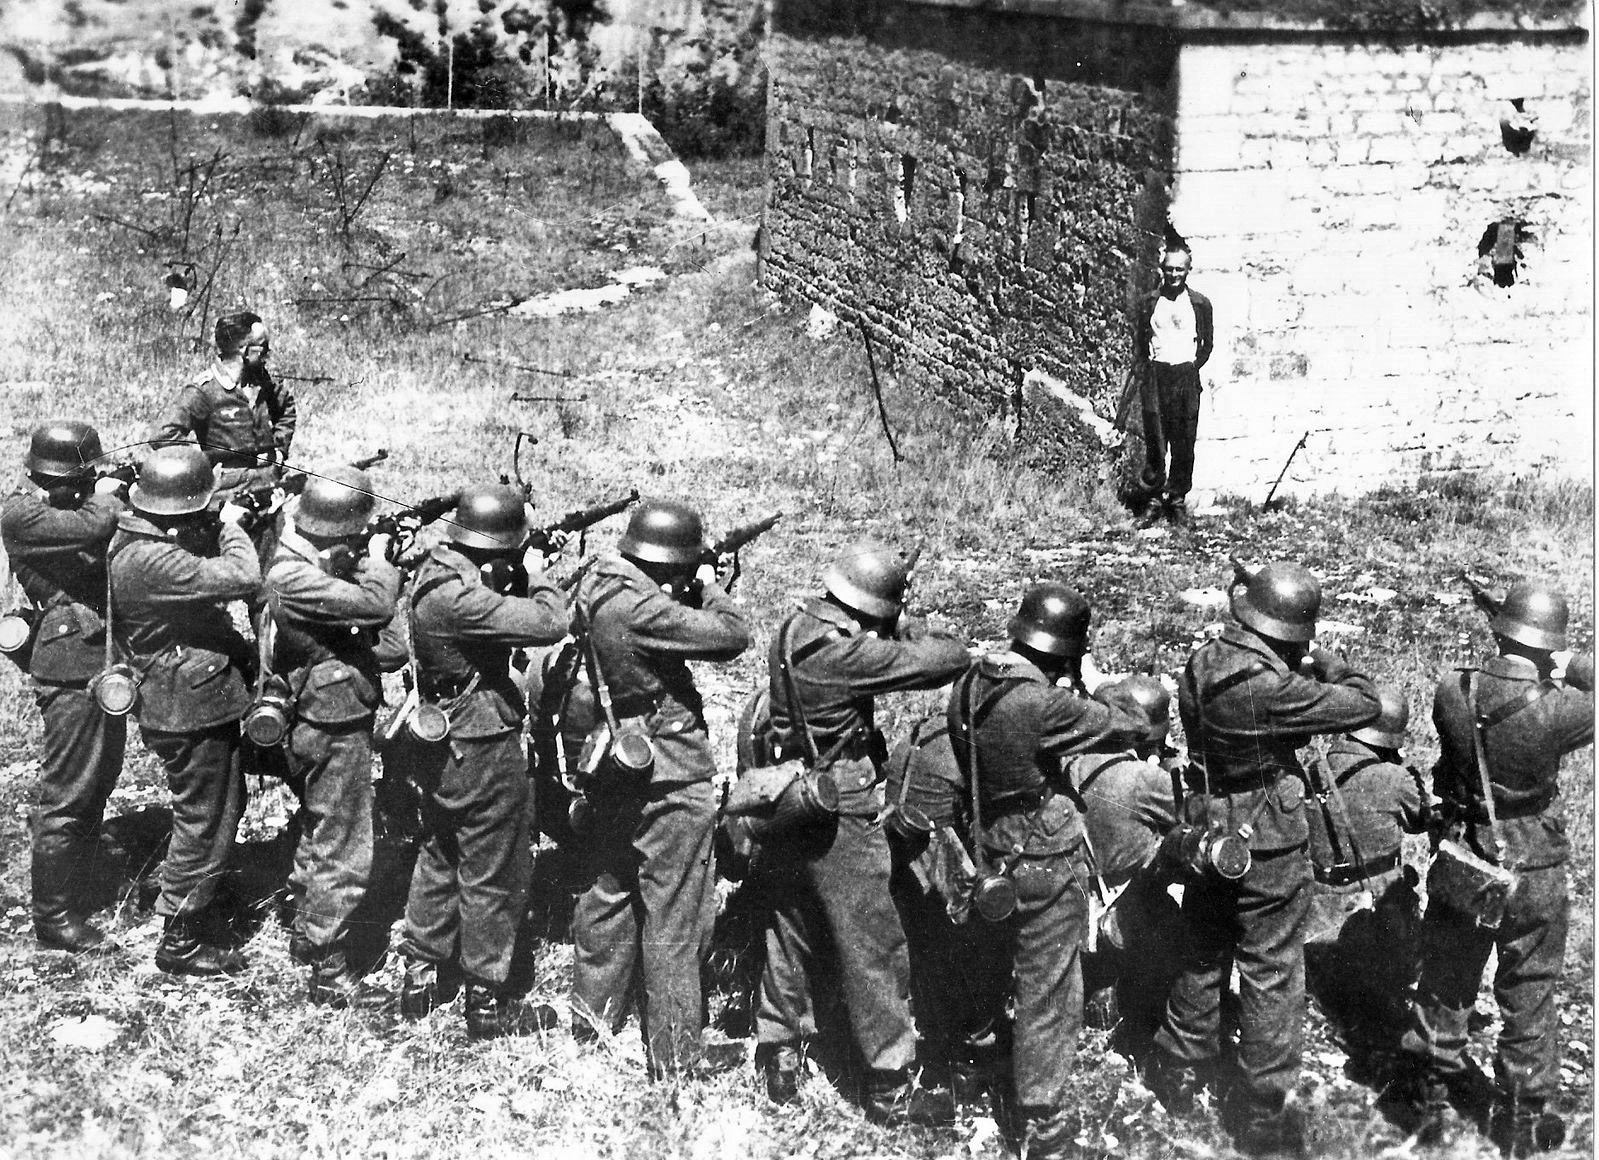 1944, October Georges Blind, a Member of the French Resistance, Smiling at a German Firing Squad